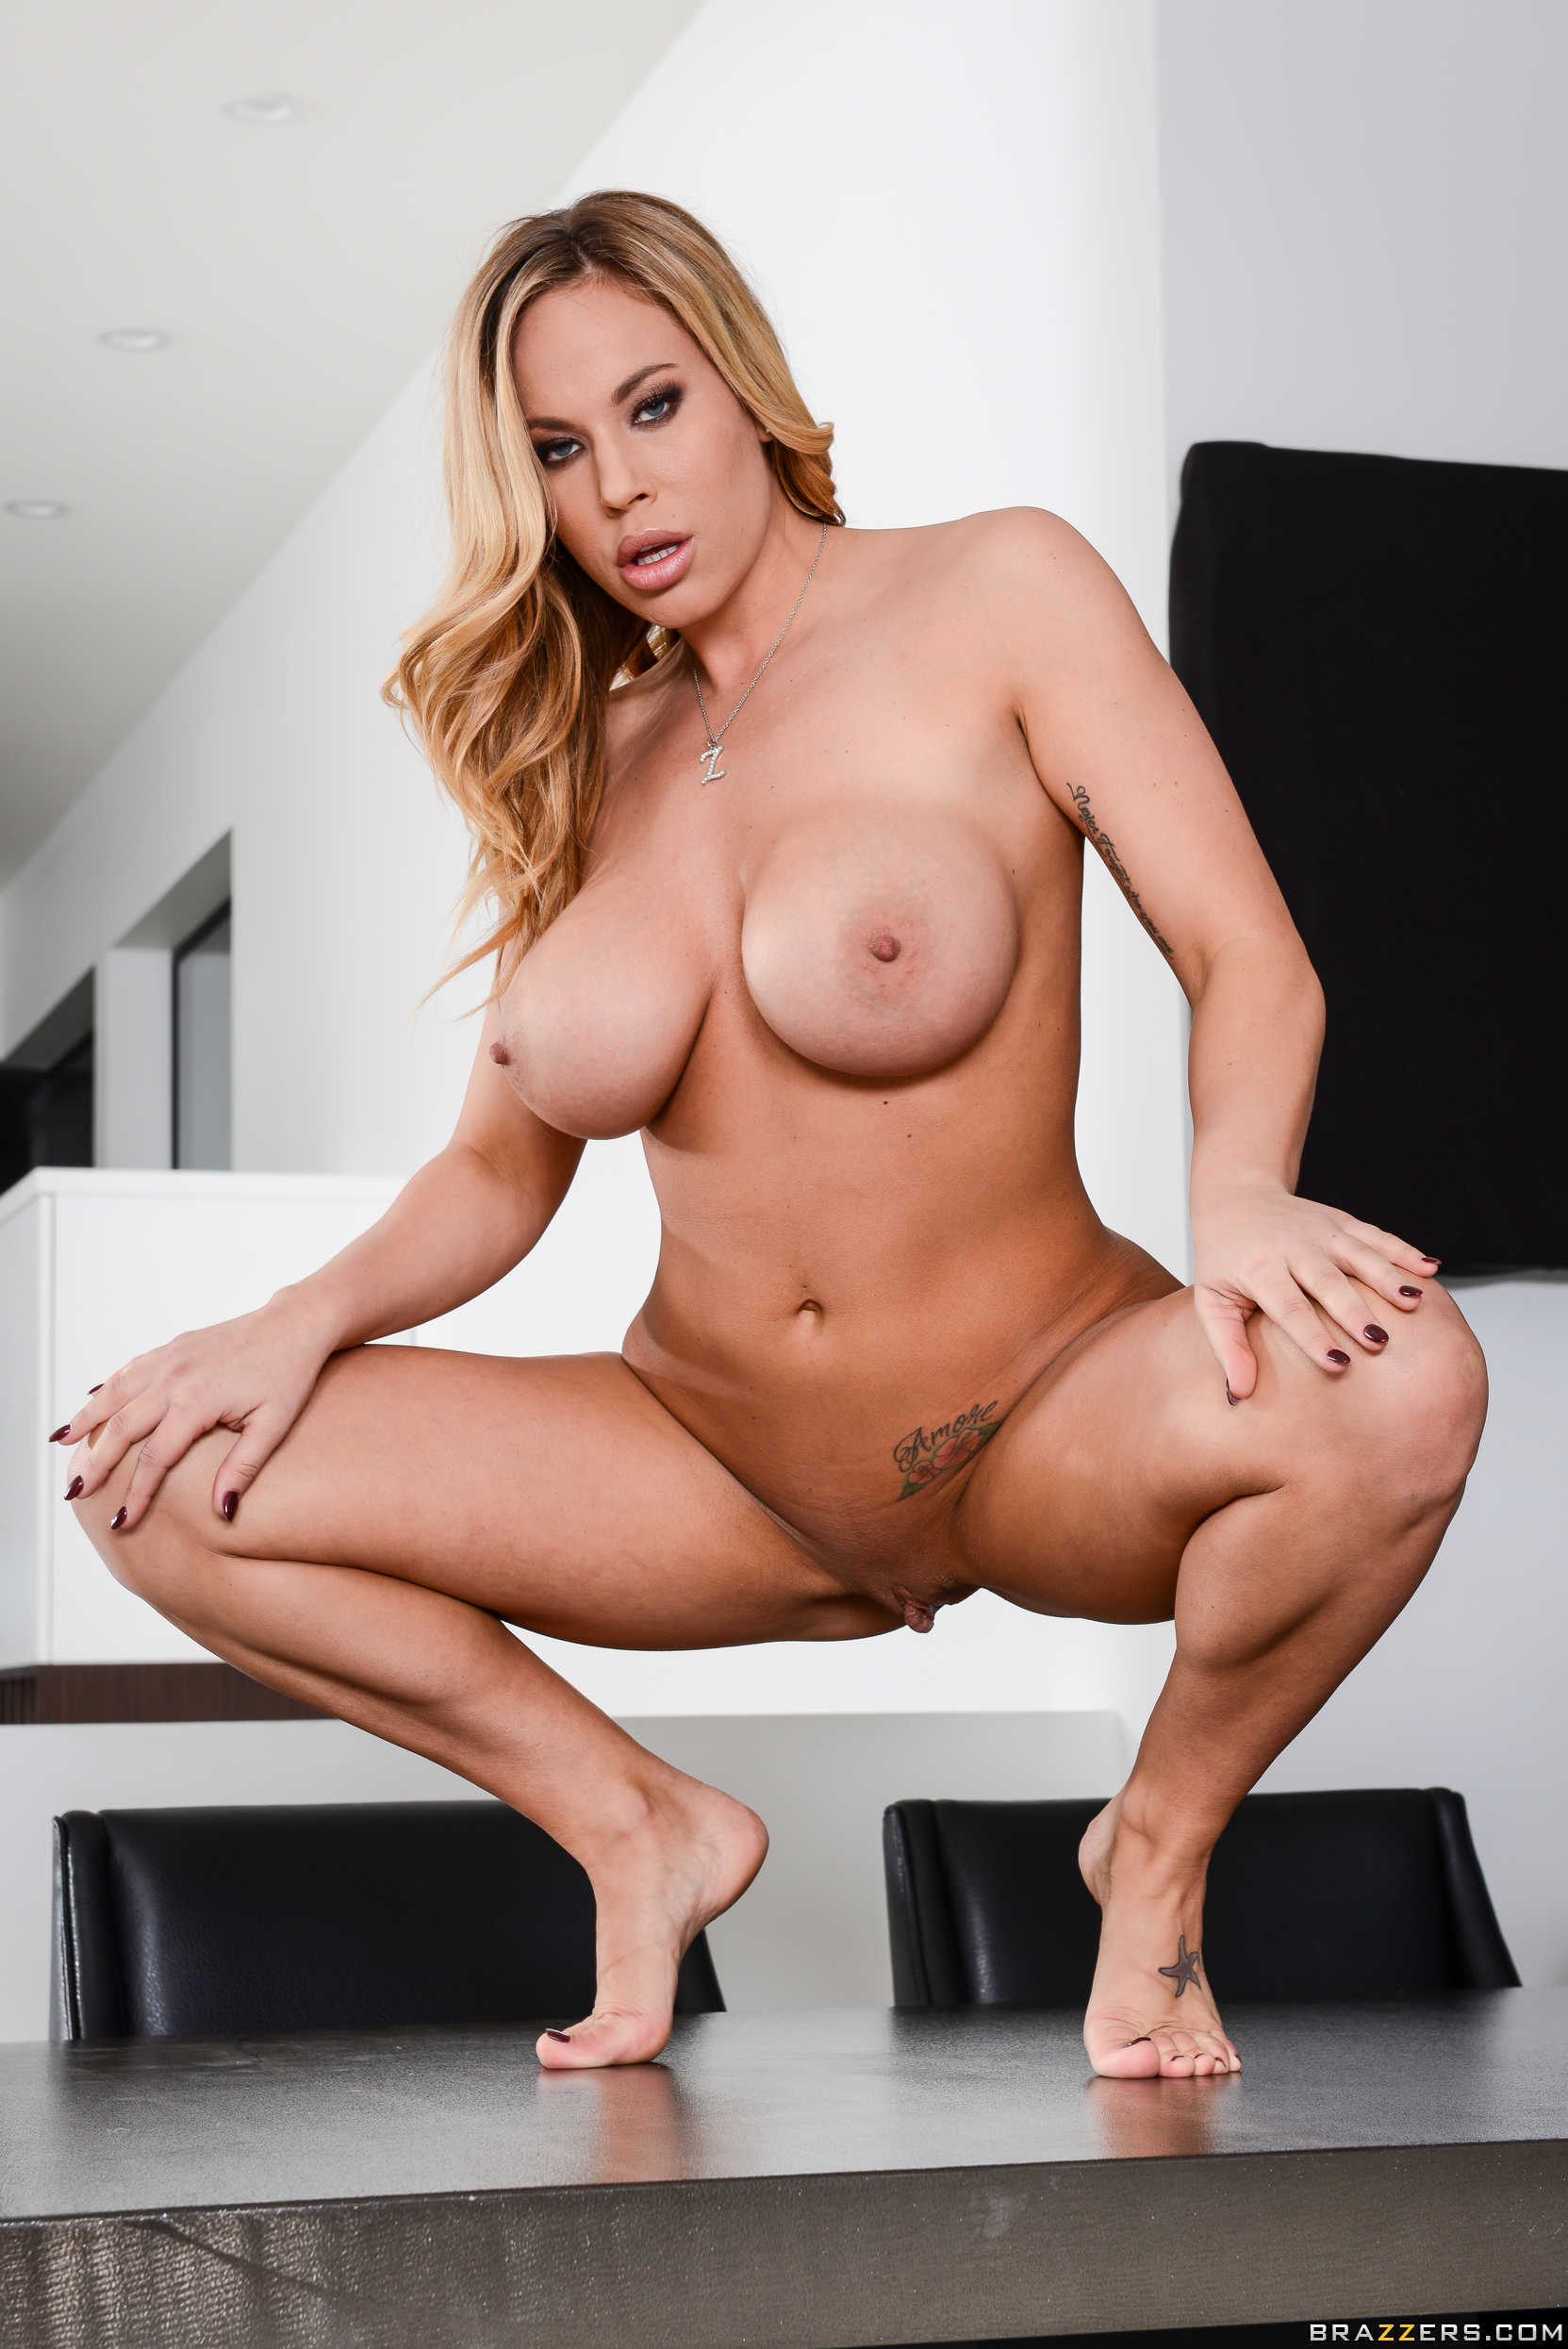 What A Babe Olivia Austin In Jeans Put Cream On Herself 608067 Dirty Whip Cream Blondie Craving Long Penis